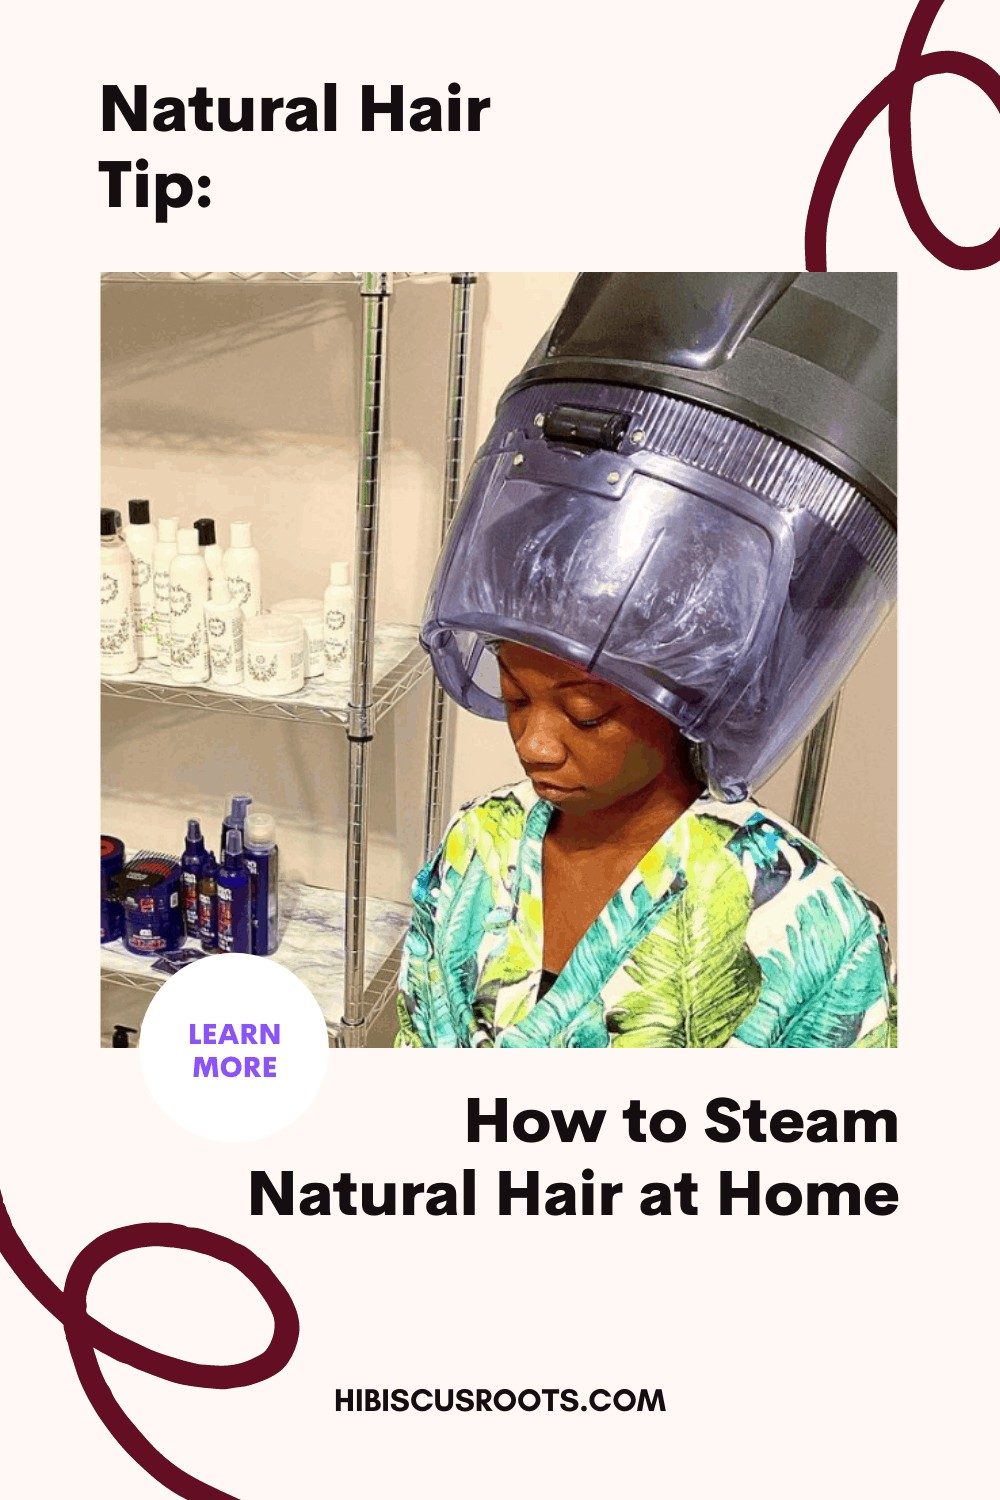 6 Hassle-Free Ways to Steam Natural Hair at Home!